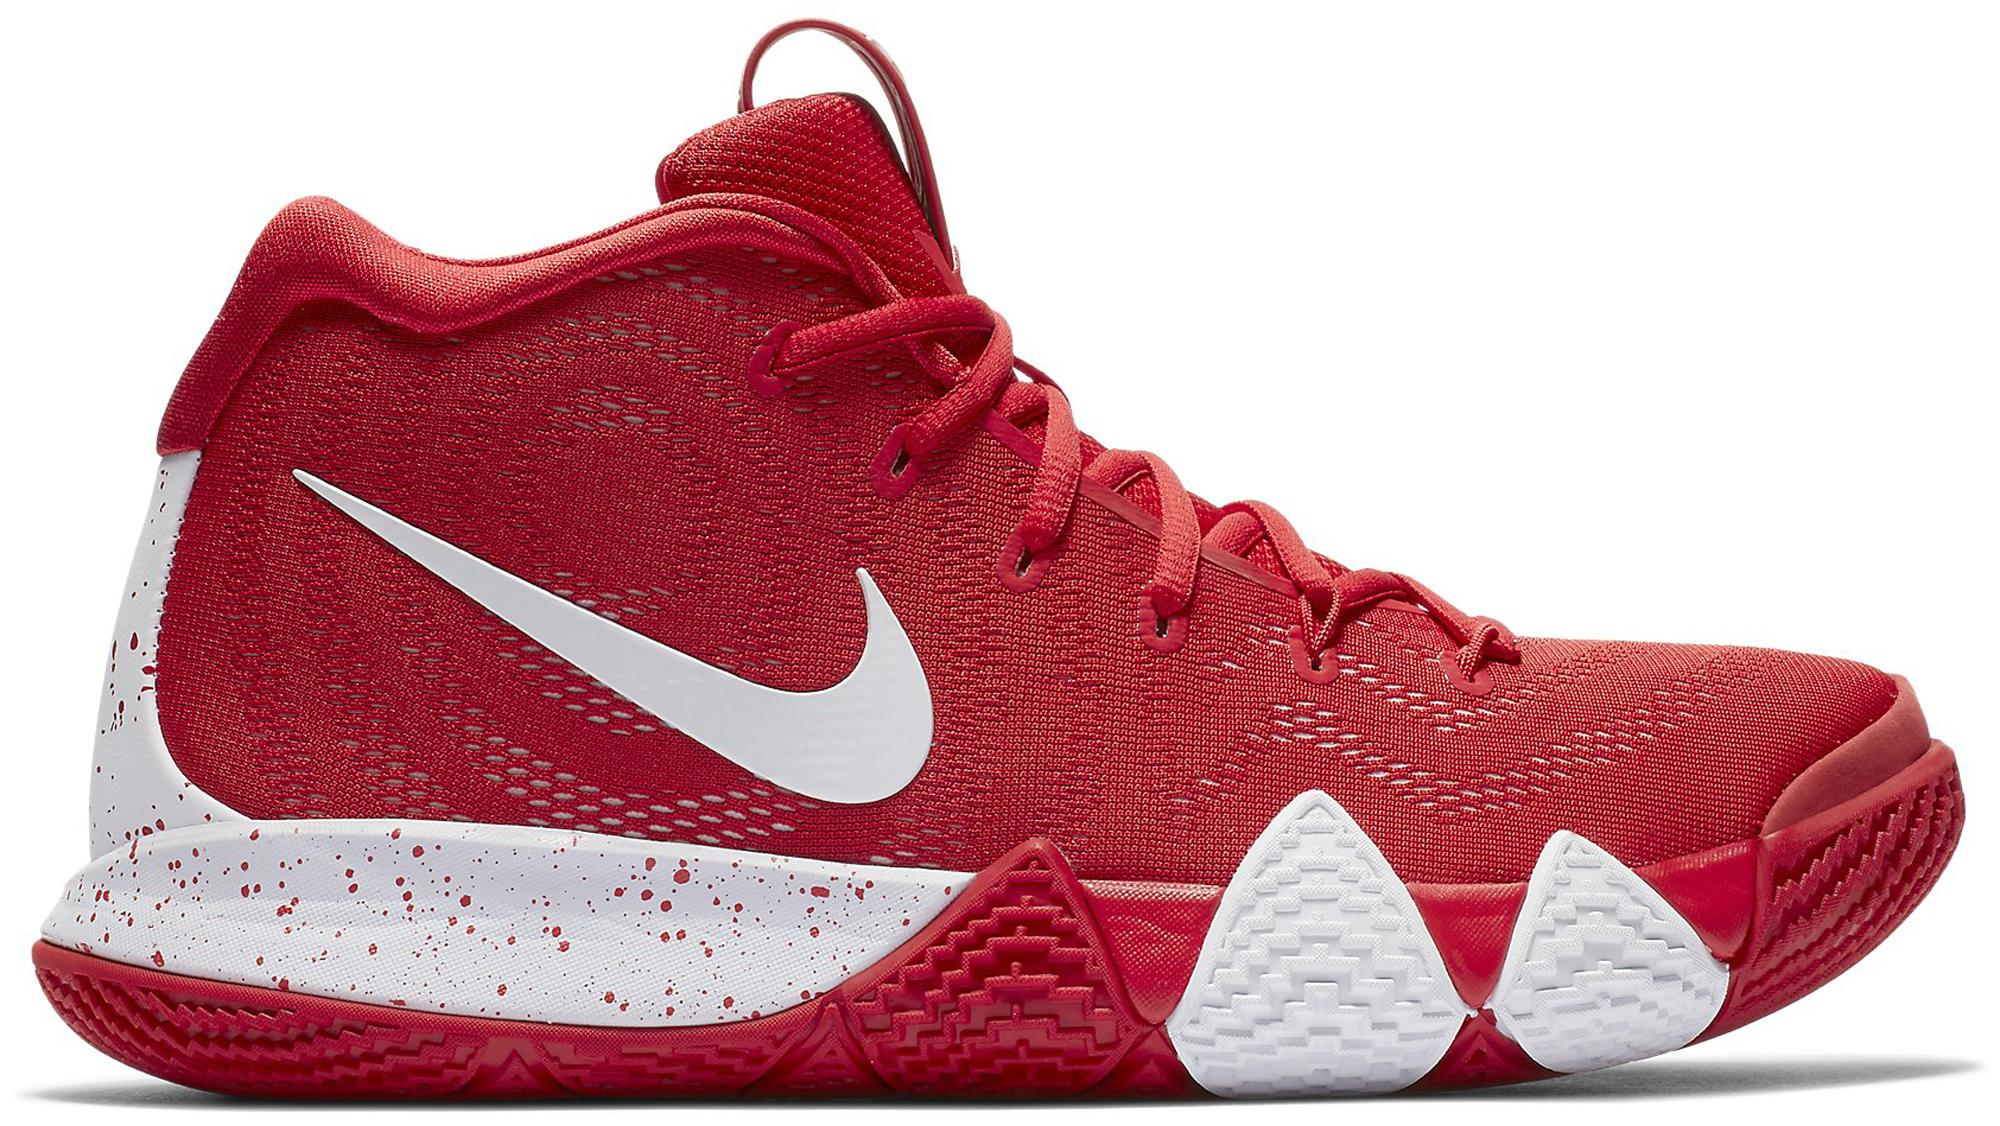 promo code 2b846 f2ad8 Men's Kyrie 4 College Red